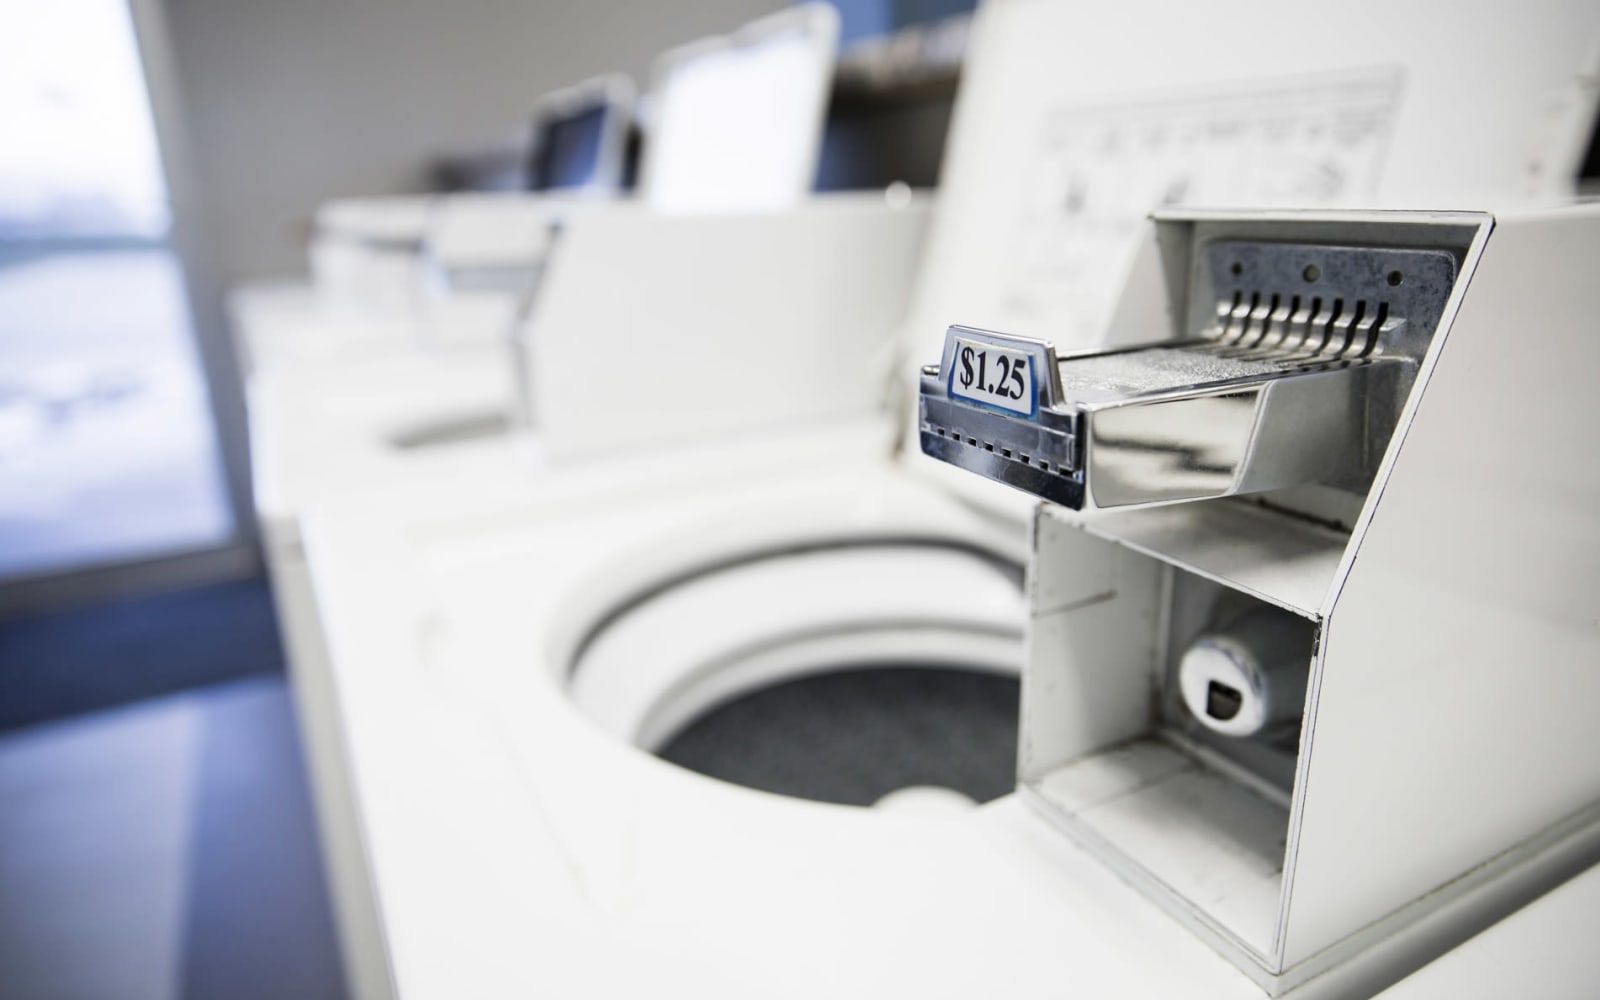 Quarter operated washing machines at Campus View & Kirkwood Court in Cedar Rapids, Iowa